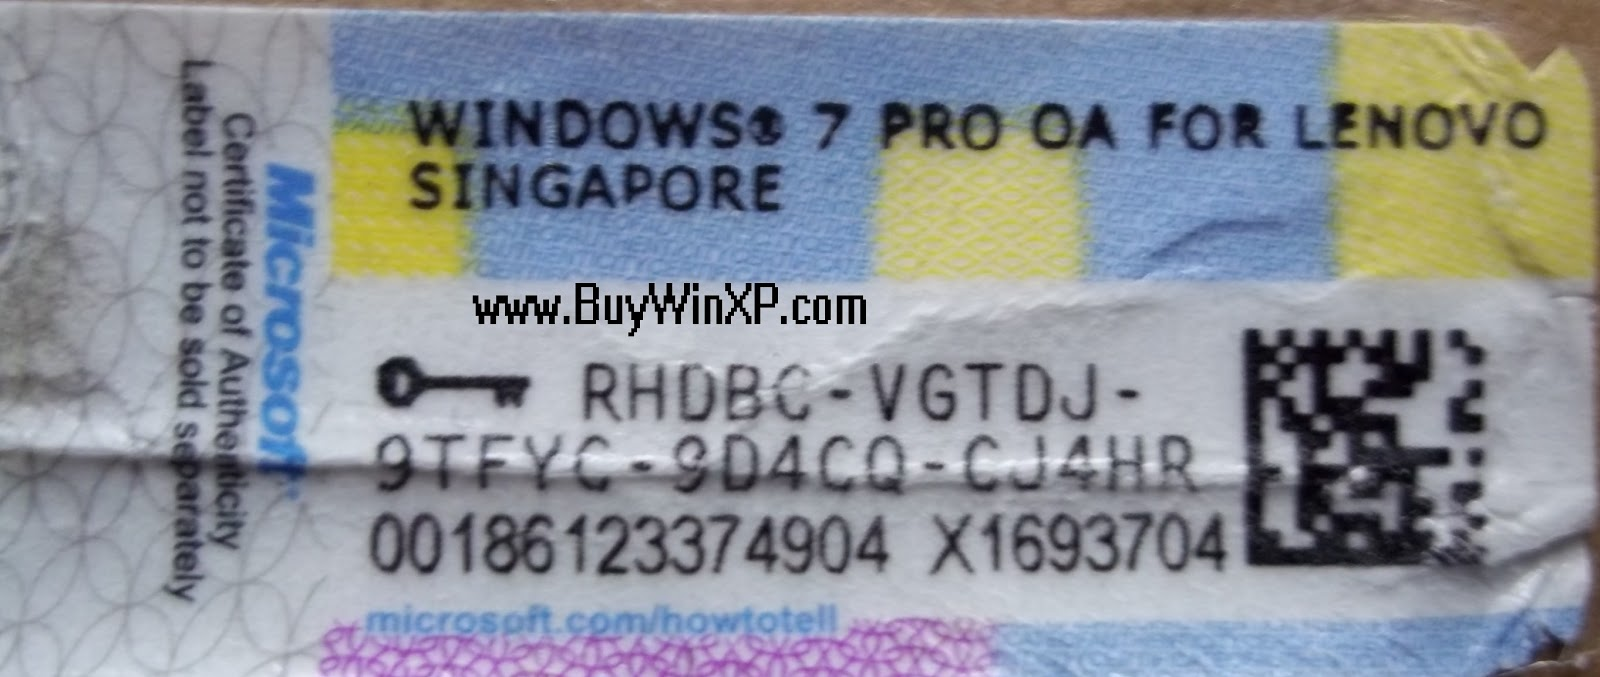 windows 8 64 bit product key